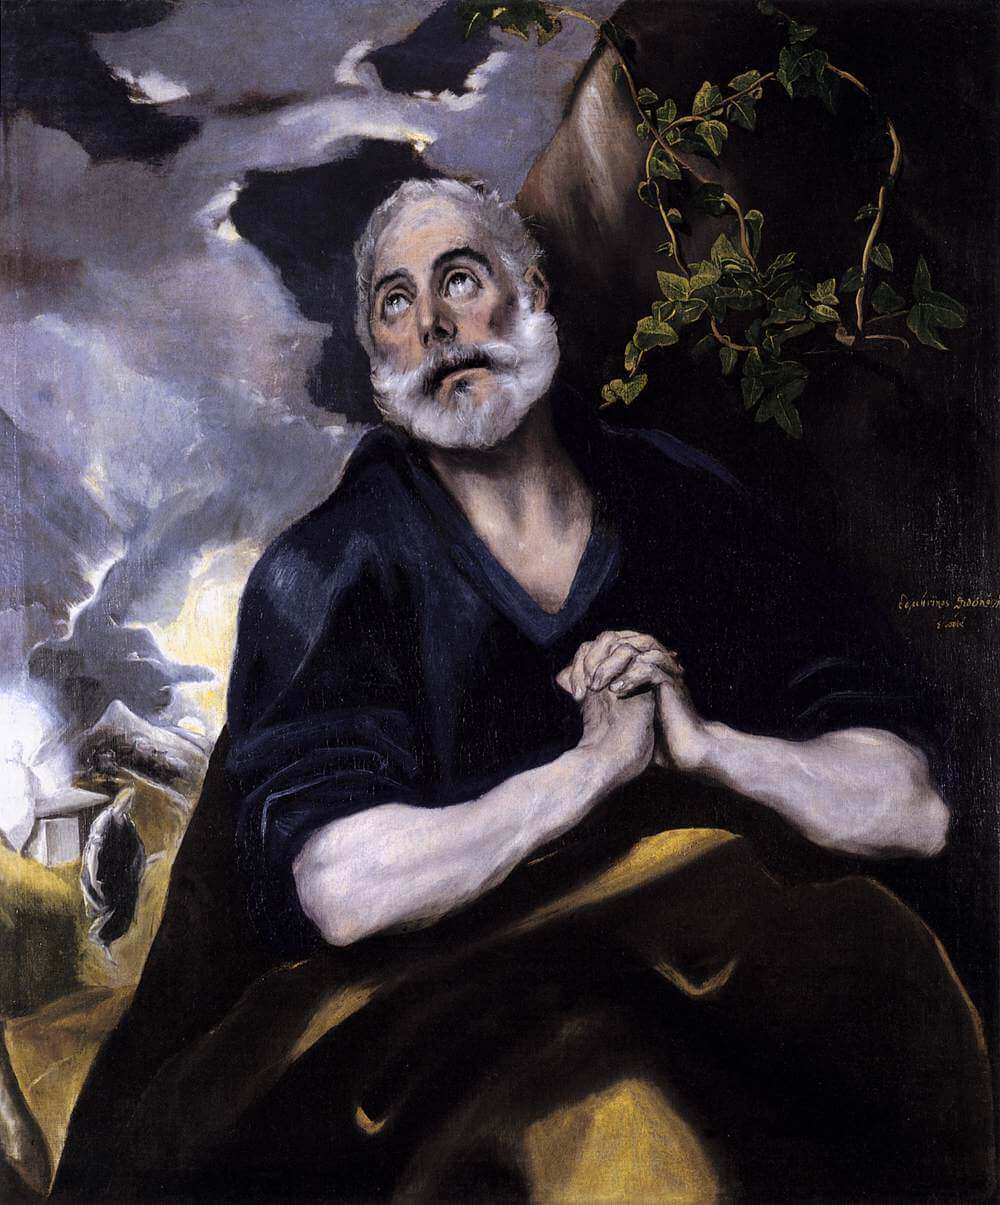 St peter in penitence - by El Greco